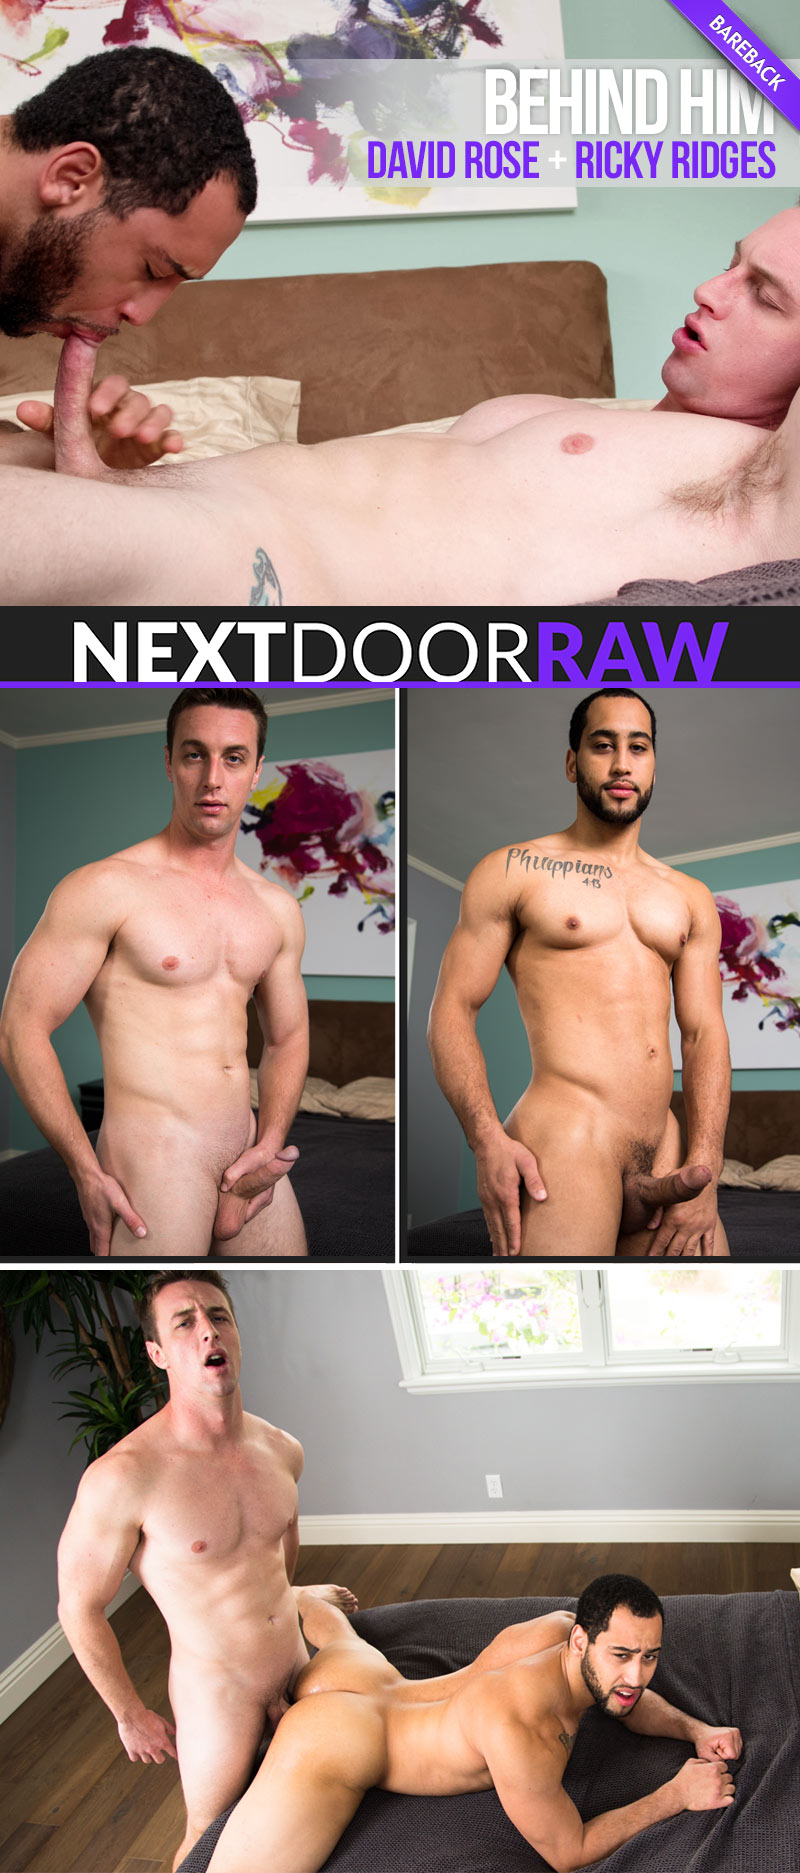 Behind Him (Ricky Ridges Fucks David Rose) (Bareback) at NextDoorRAW!